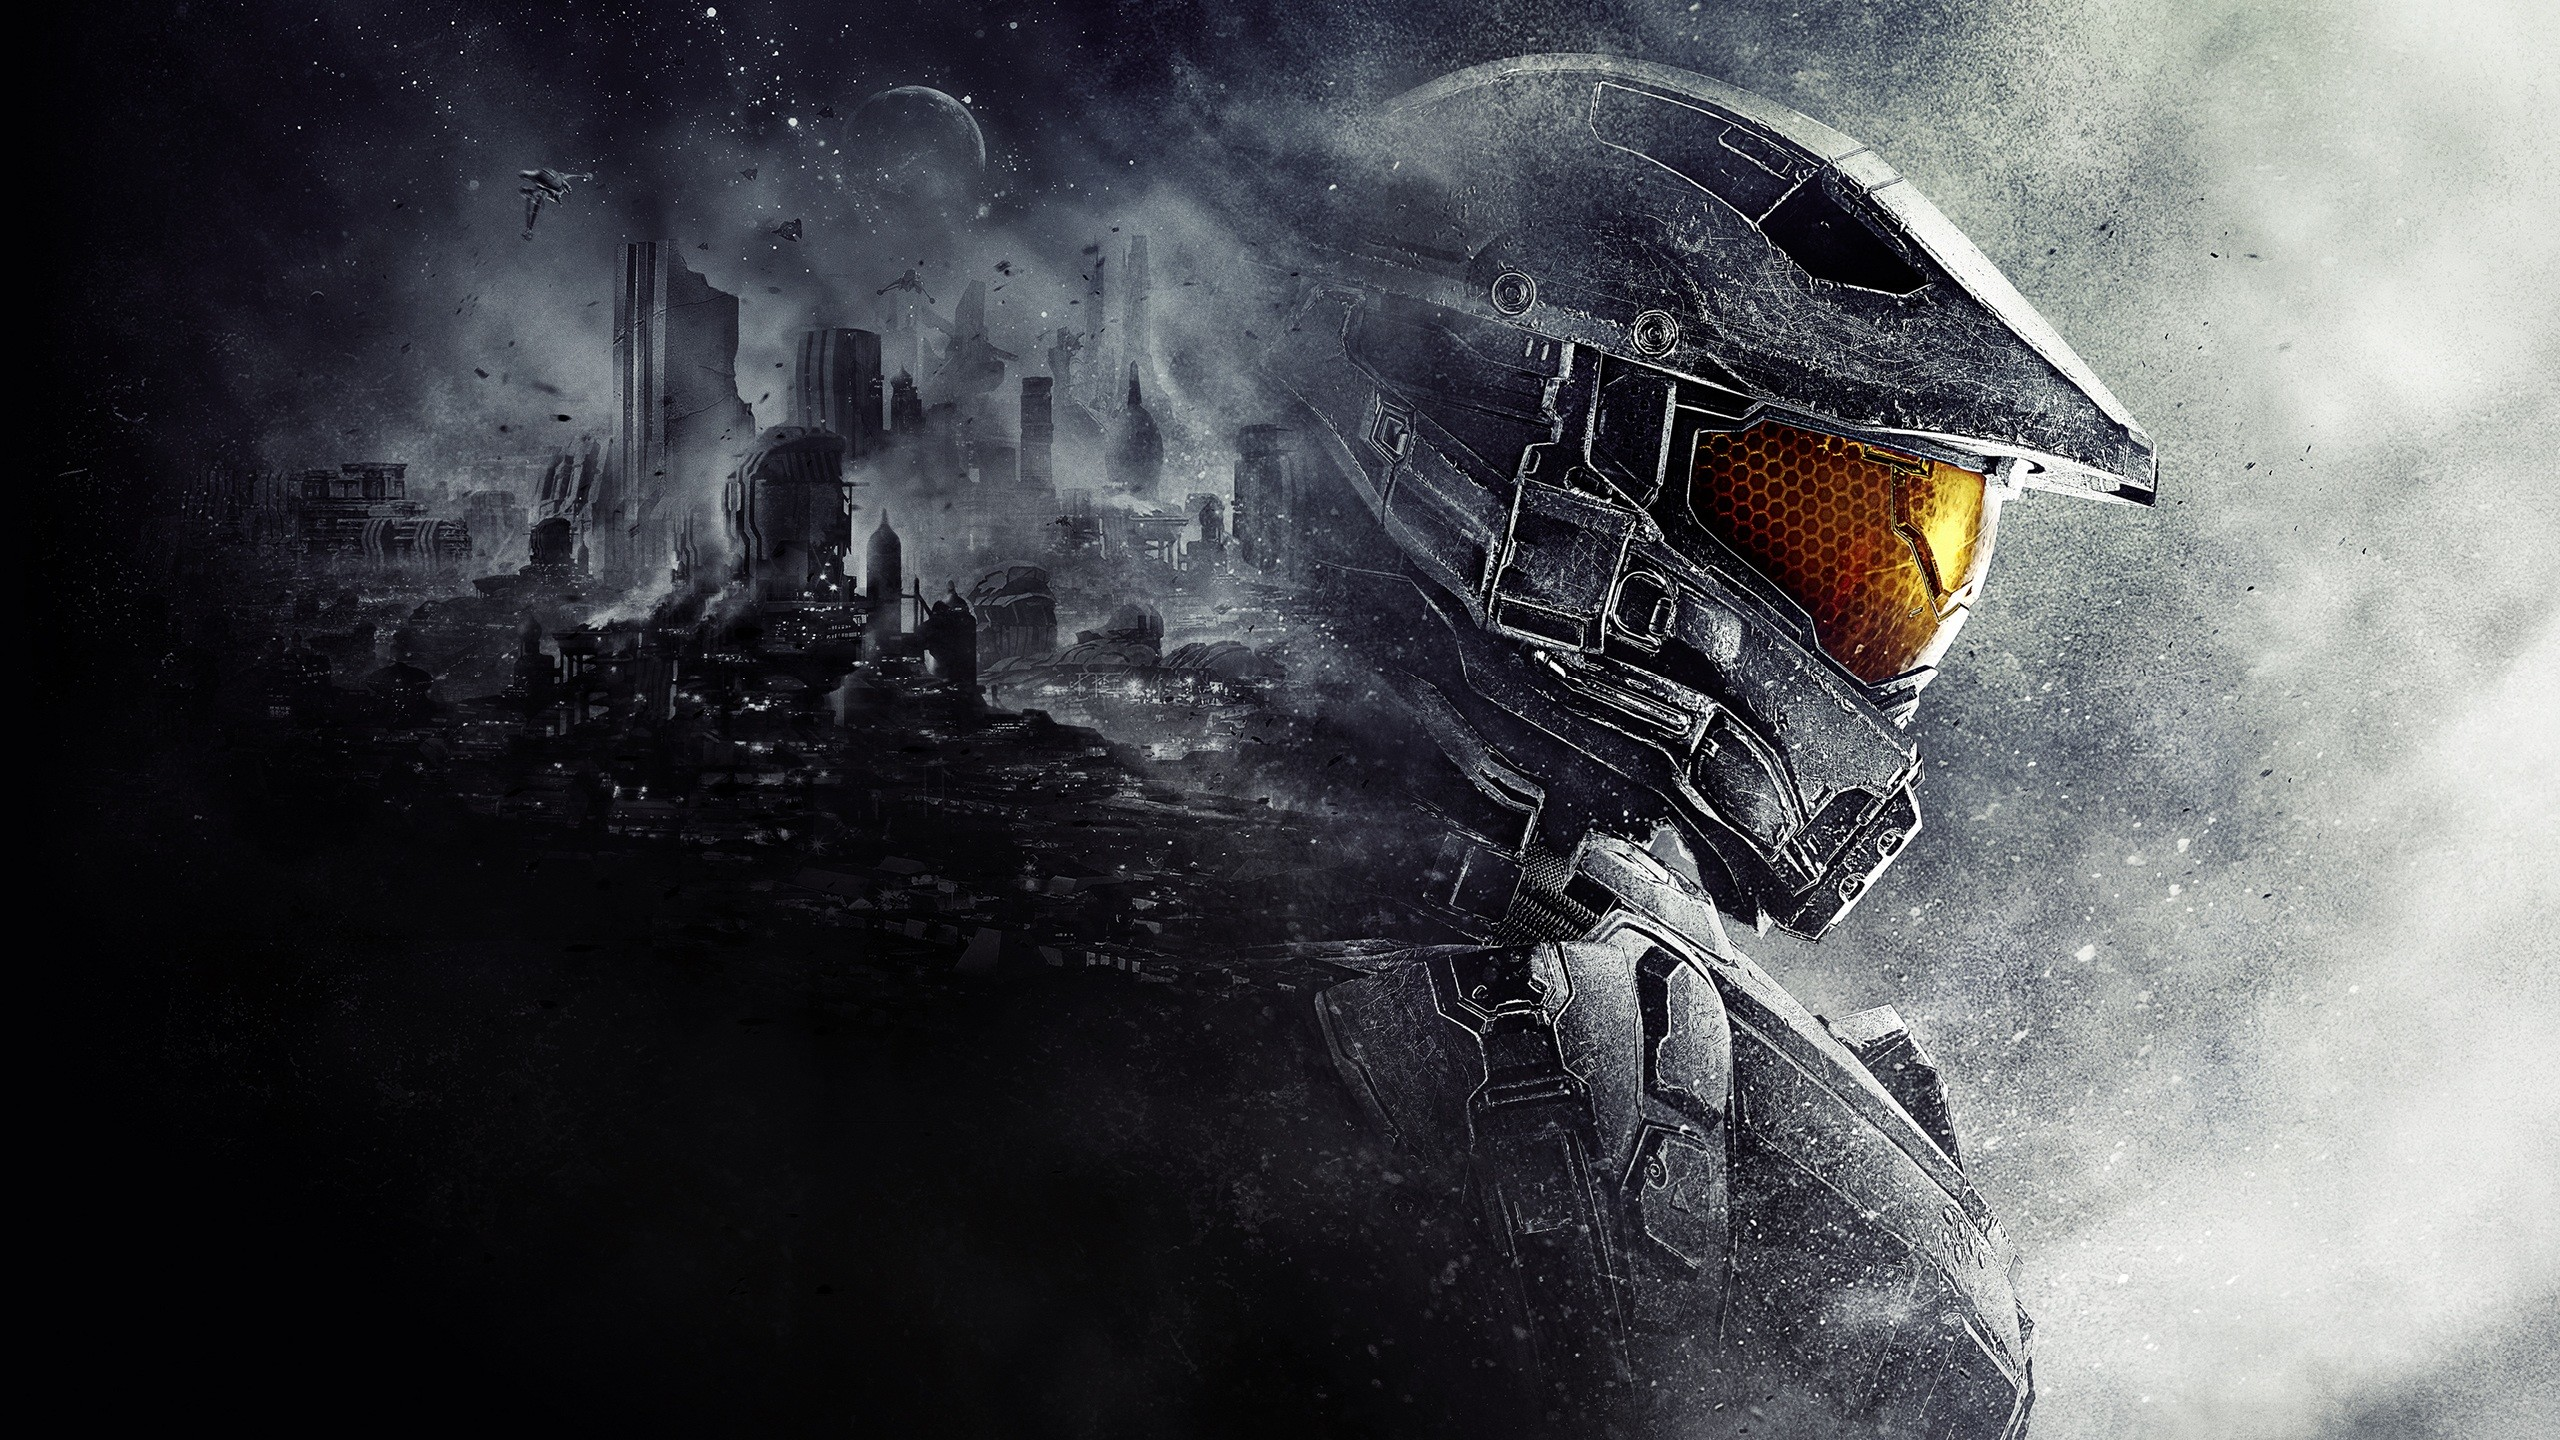 Halo Combat Evolved Wallpaper 77 Images